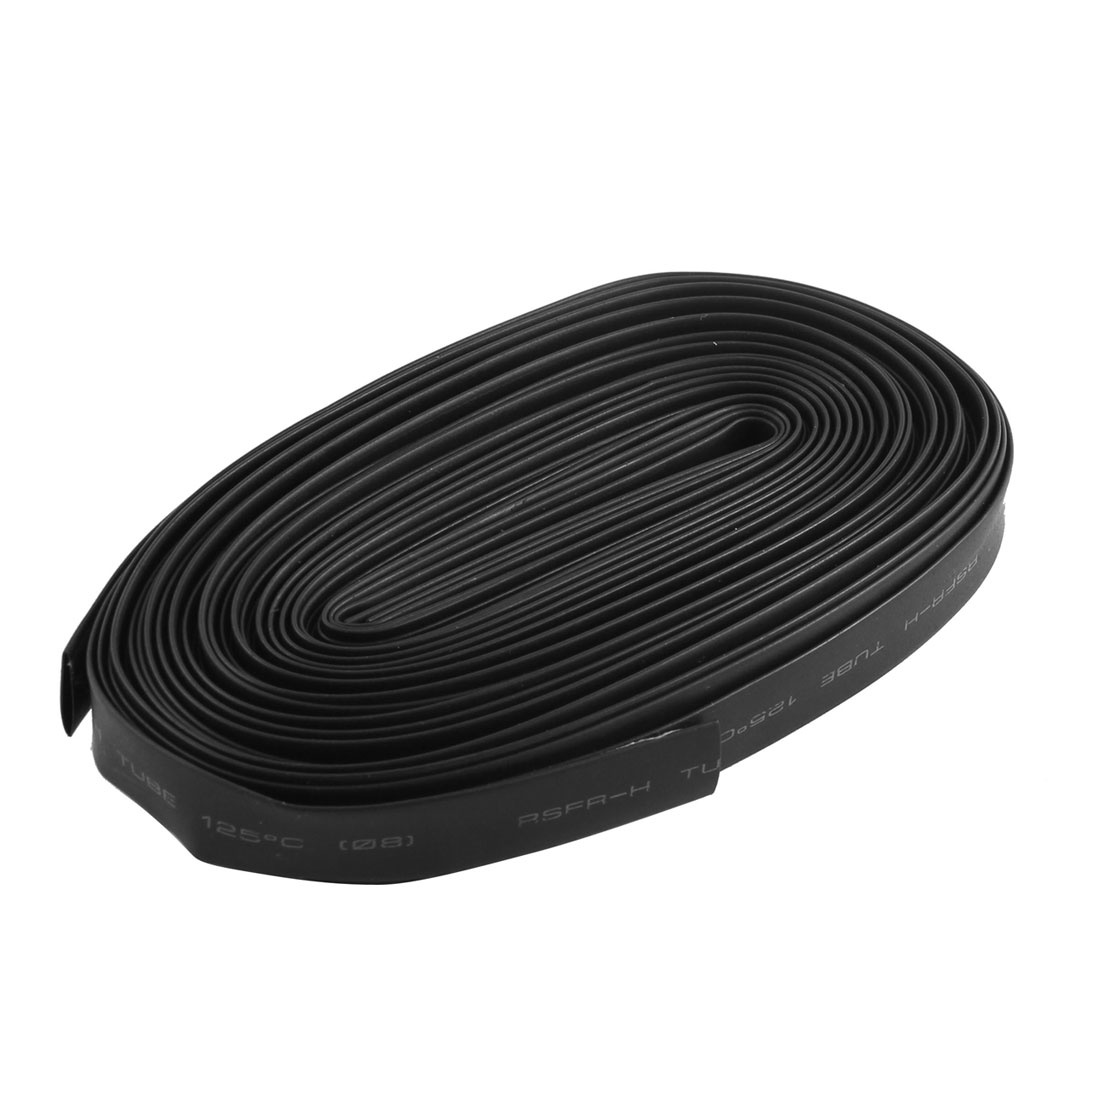 2pcs 16Ft 5M Long 600V 125C 4mm 8mm 2:1 Heat Shrink Wire Wrap Shrinkable Tube Cable Sleeve Tubing